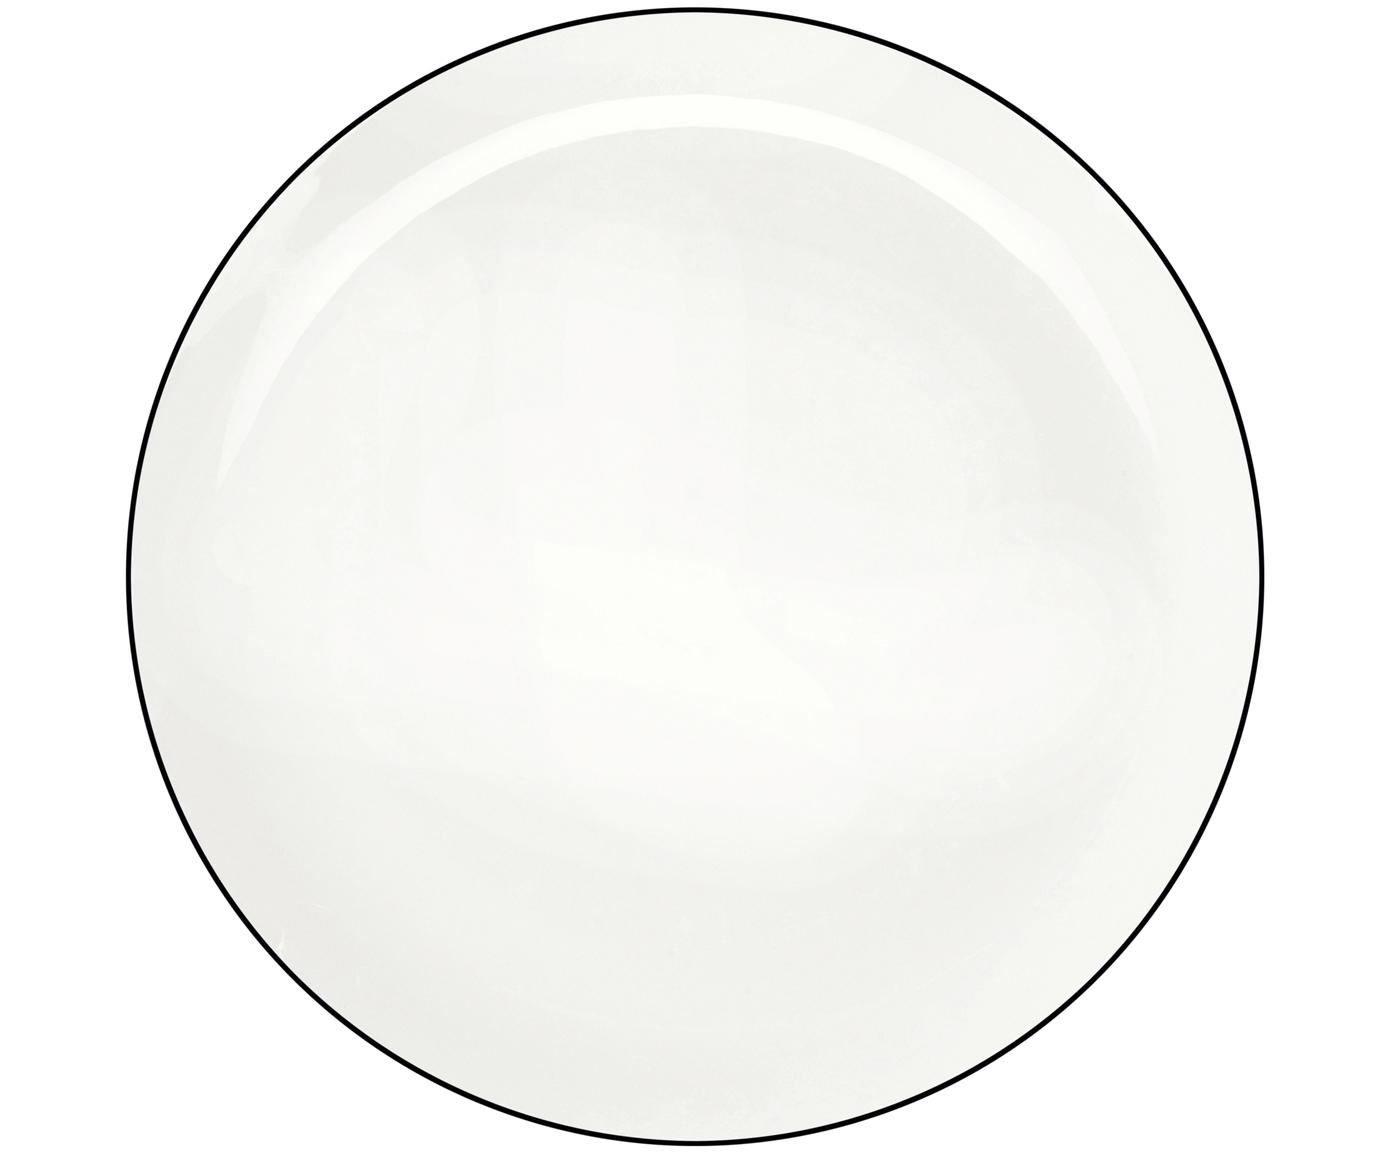 Platos llanos á table ligne noir, 4 uds., Porcelana fina, Blanco Borde: negro, Ø 27 cm